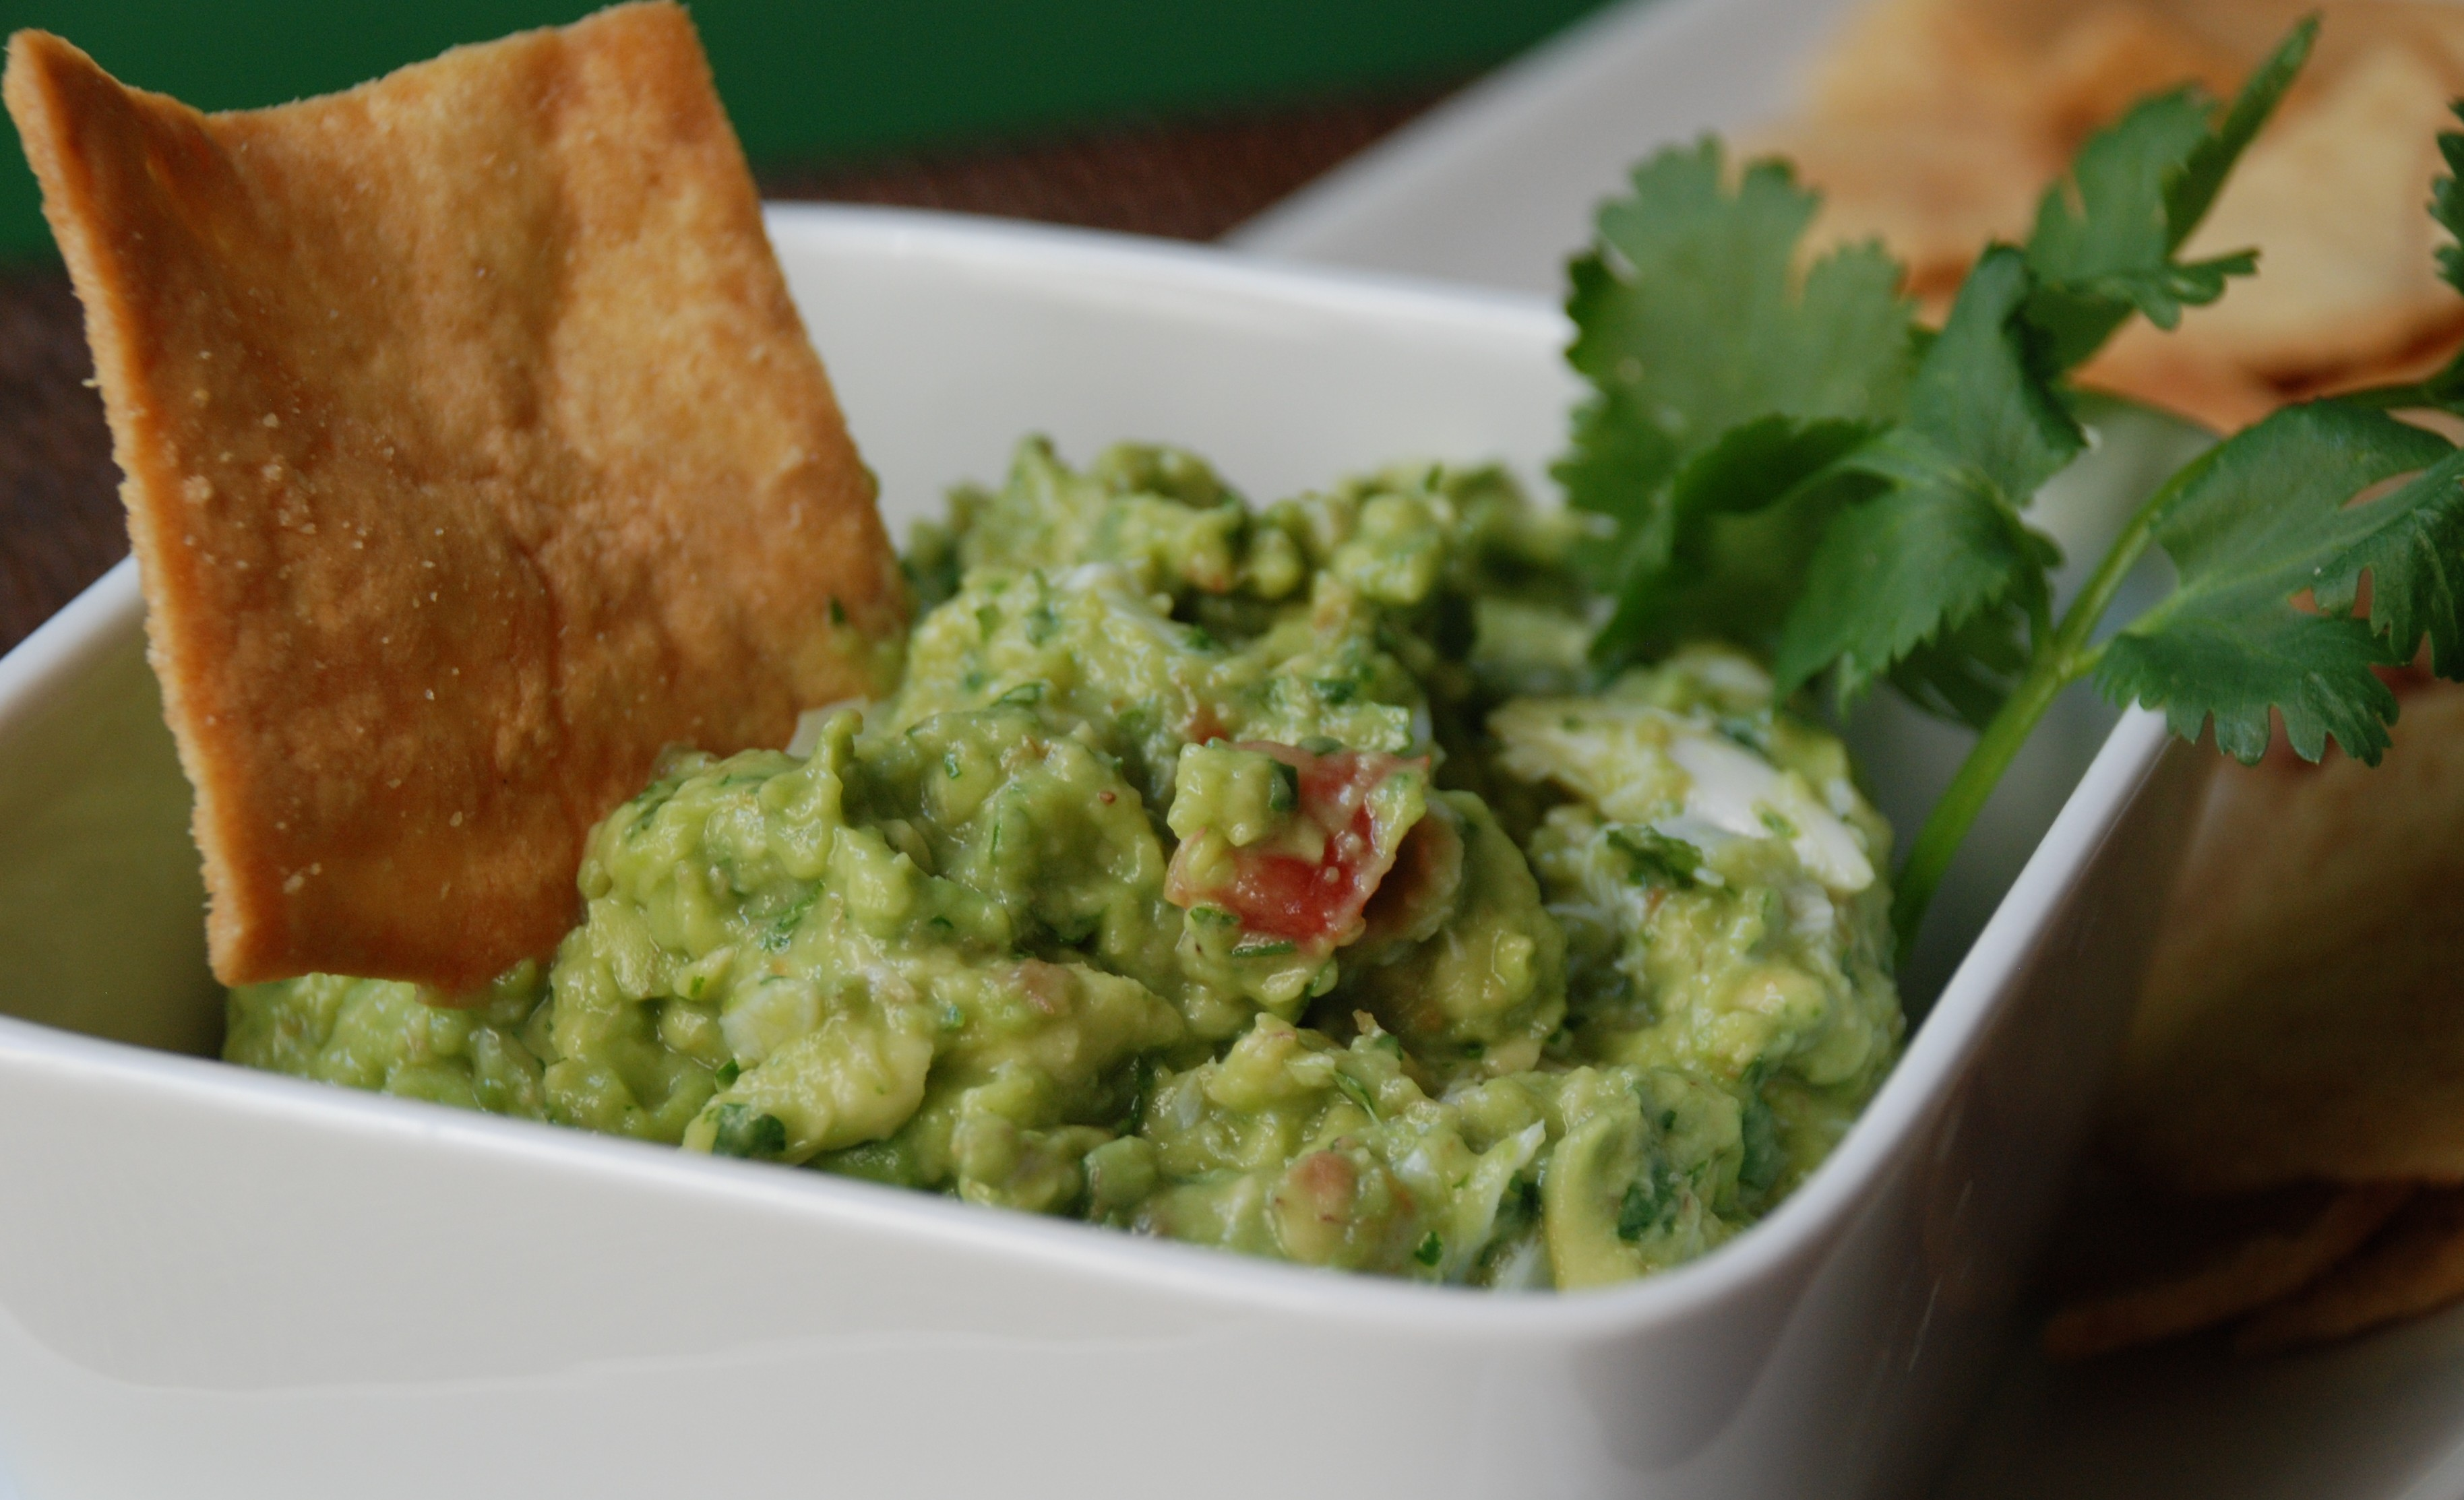 Avocado and Crab Dip